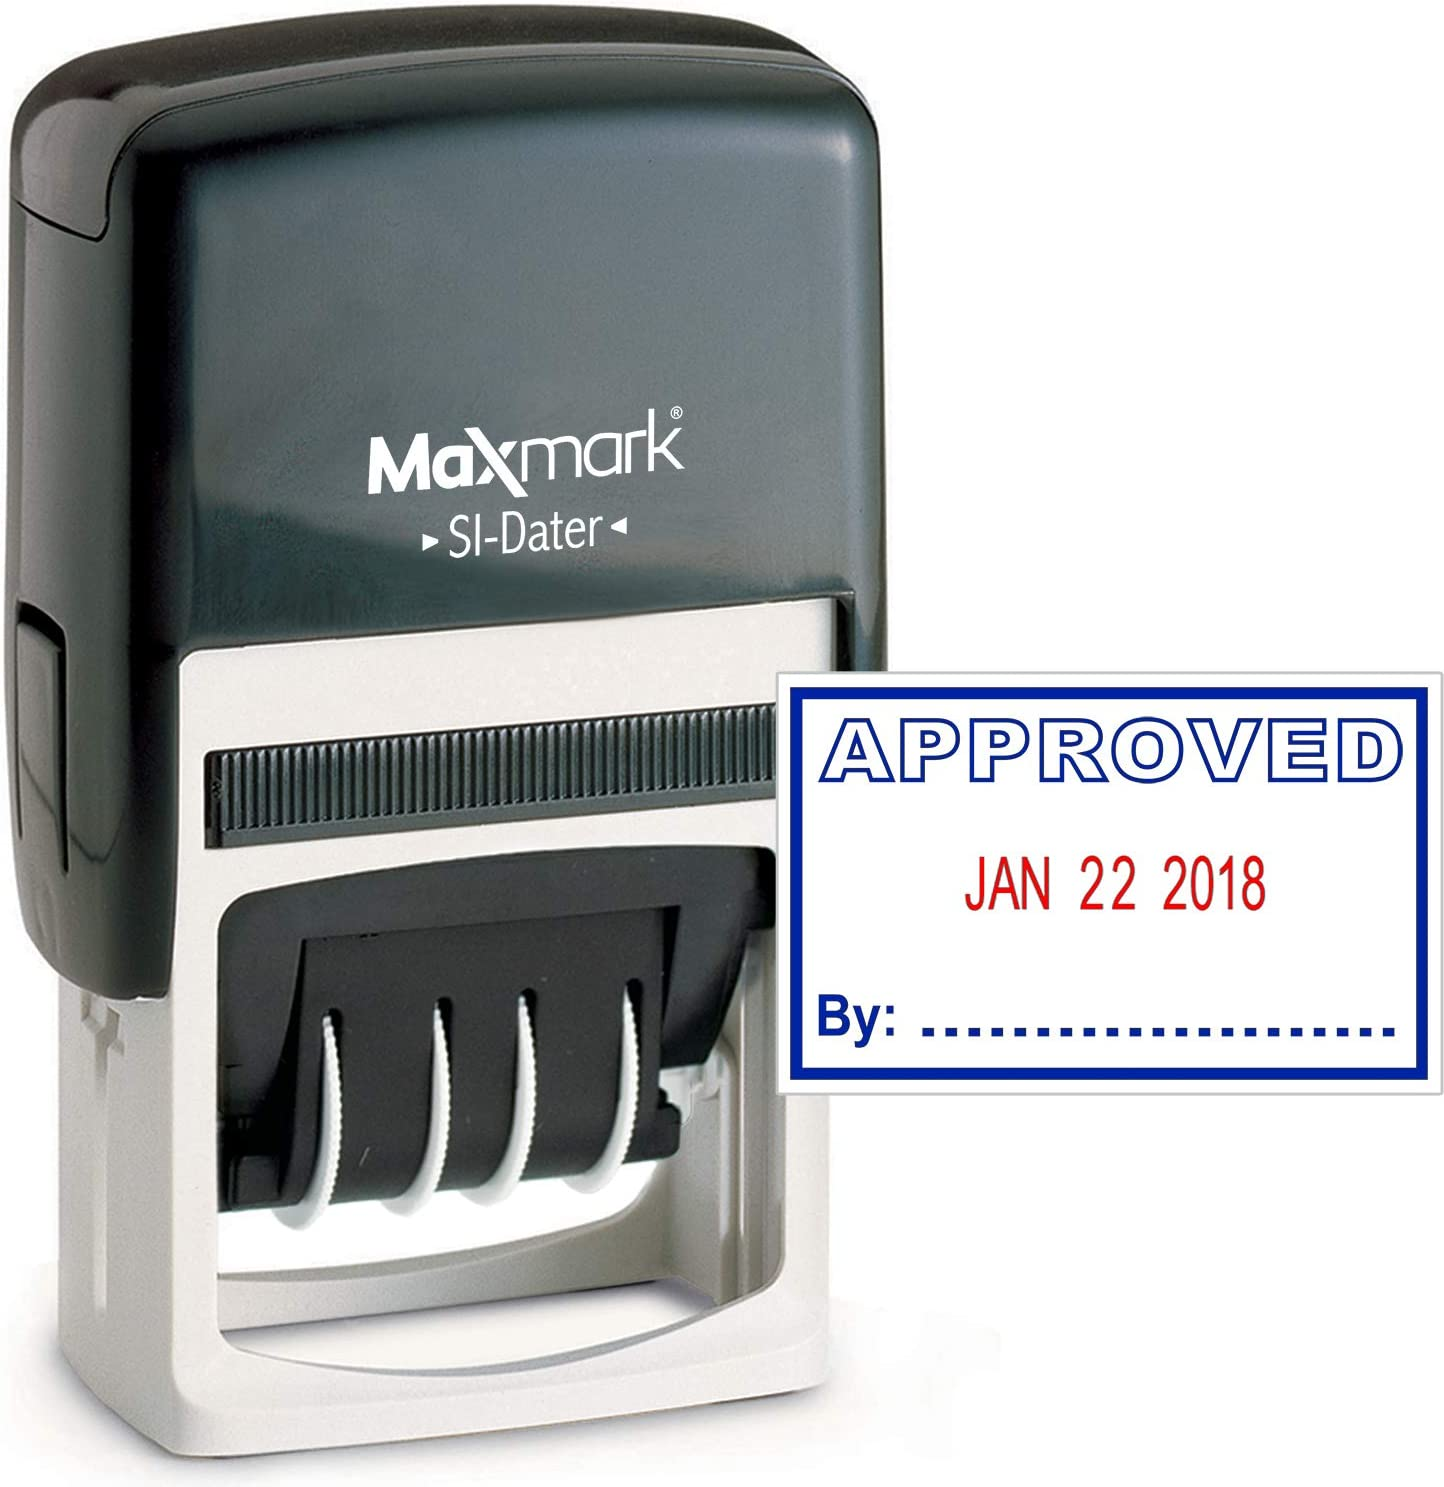 MaxMark Office Date Stamp with Approved Self Inking Date Stamp - Blue/RED Ink